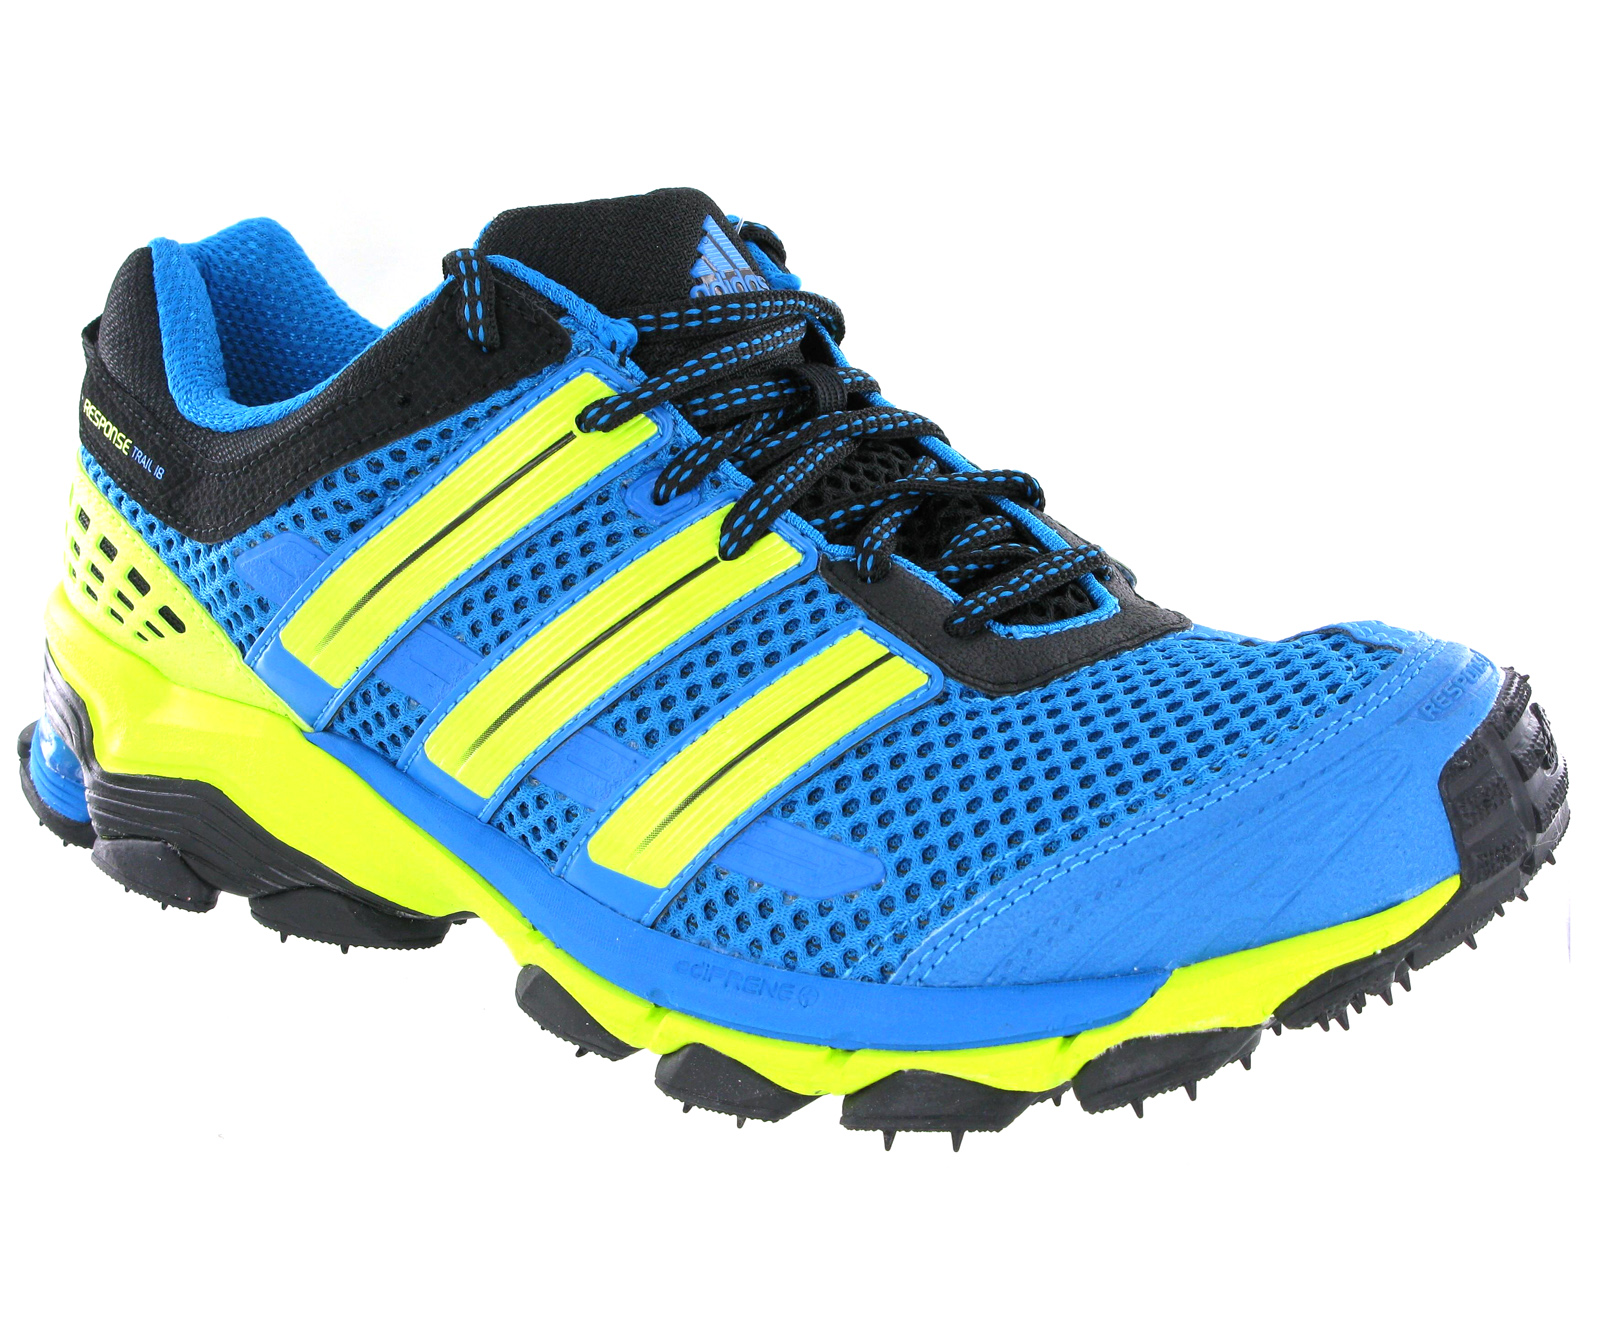 herren jogging laufschuhe adidas response trail 18 m blau sport 43 46 ebay. Black Bedroom Furniture Sets. Home Design Ideas